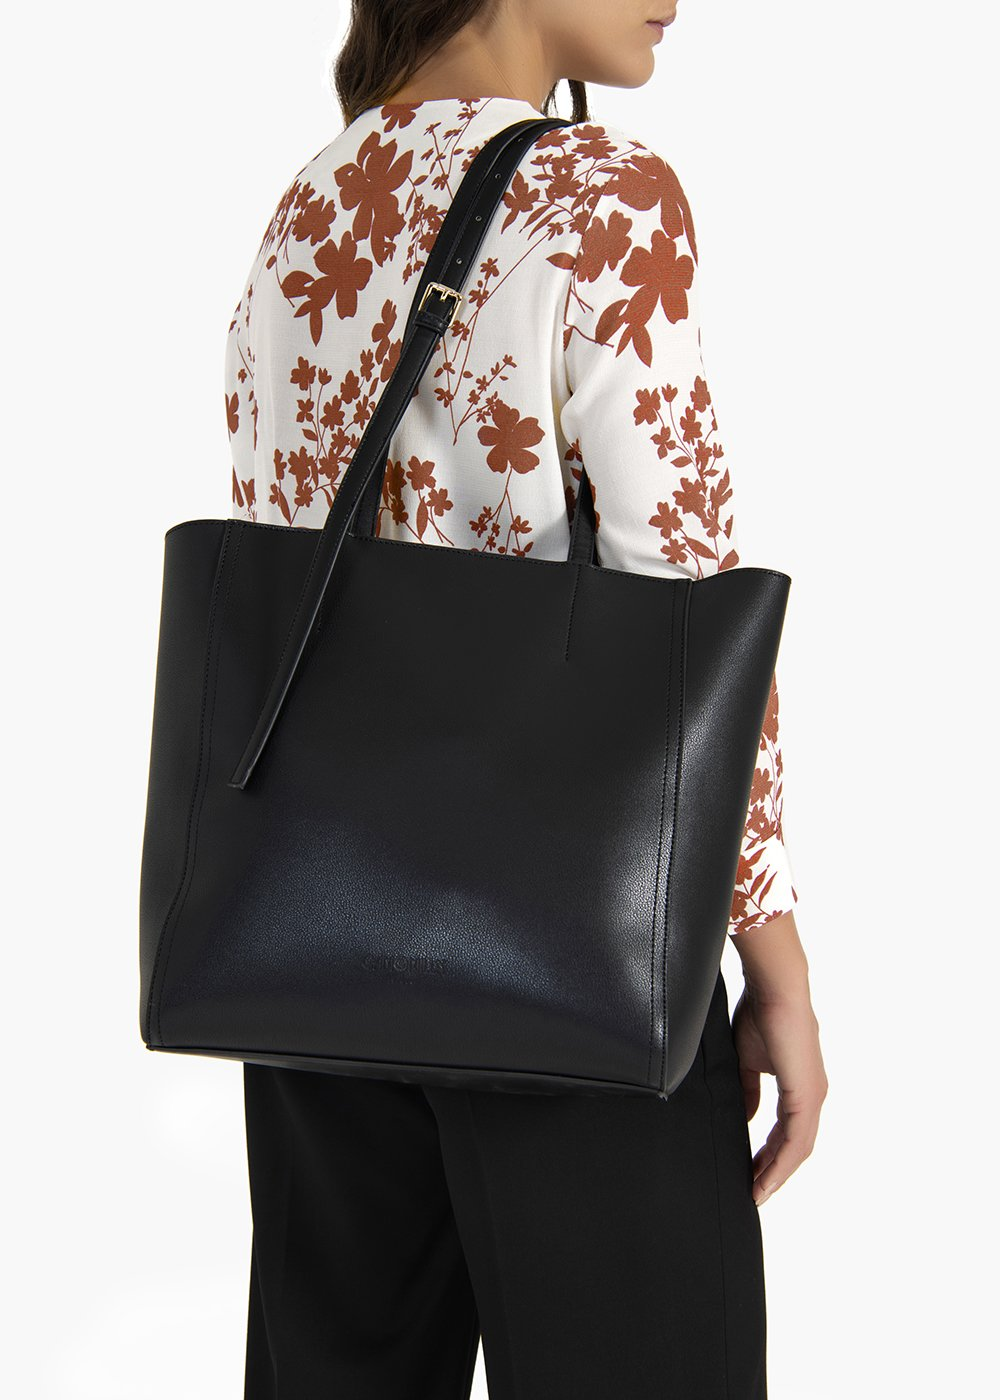 Belia shopping bag in unlined eco leather - Black - Woman